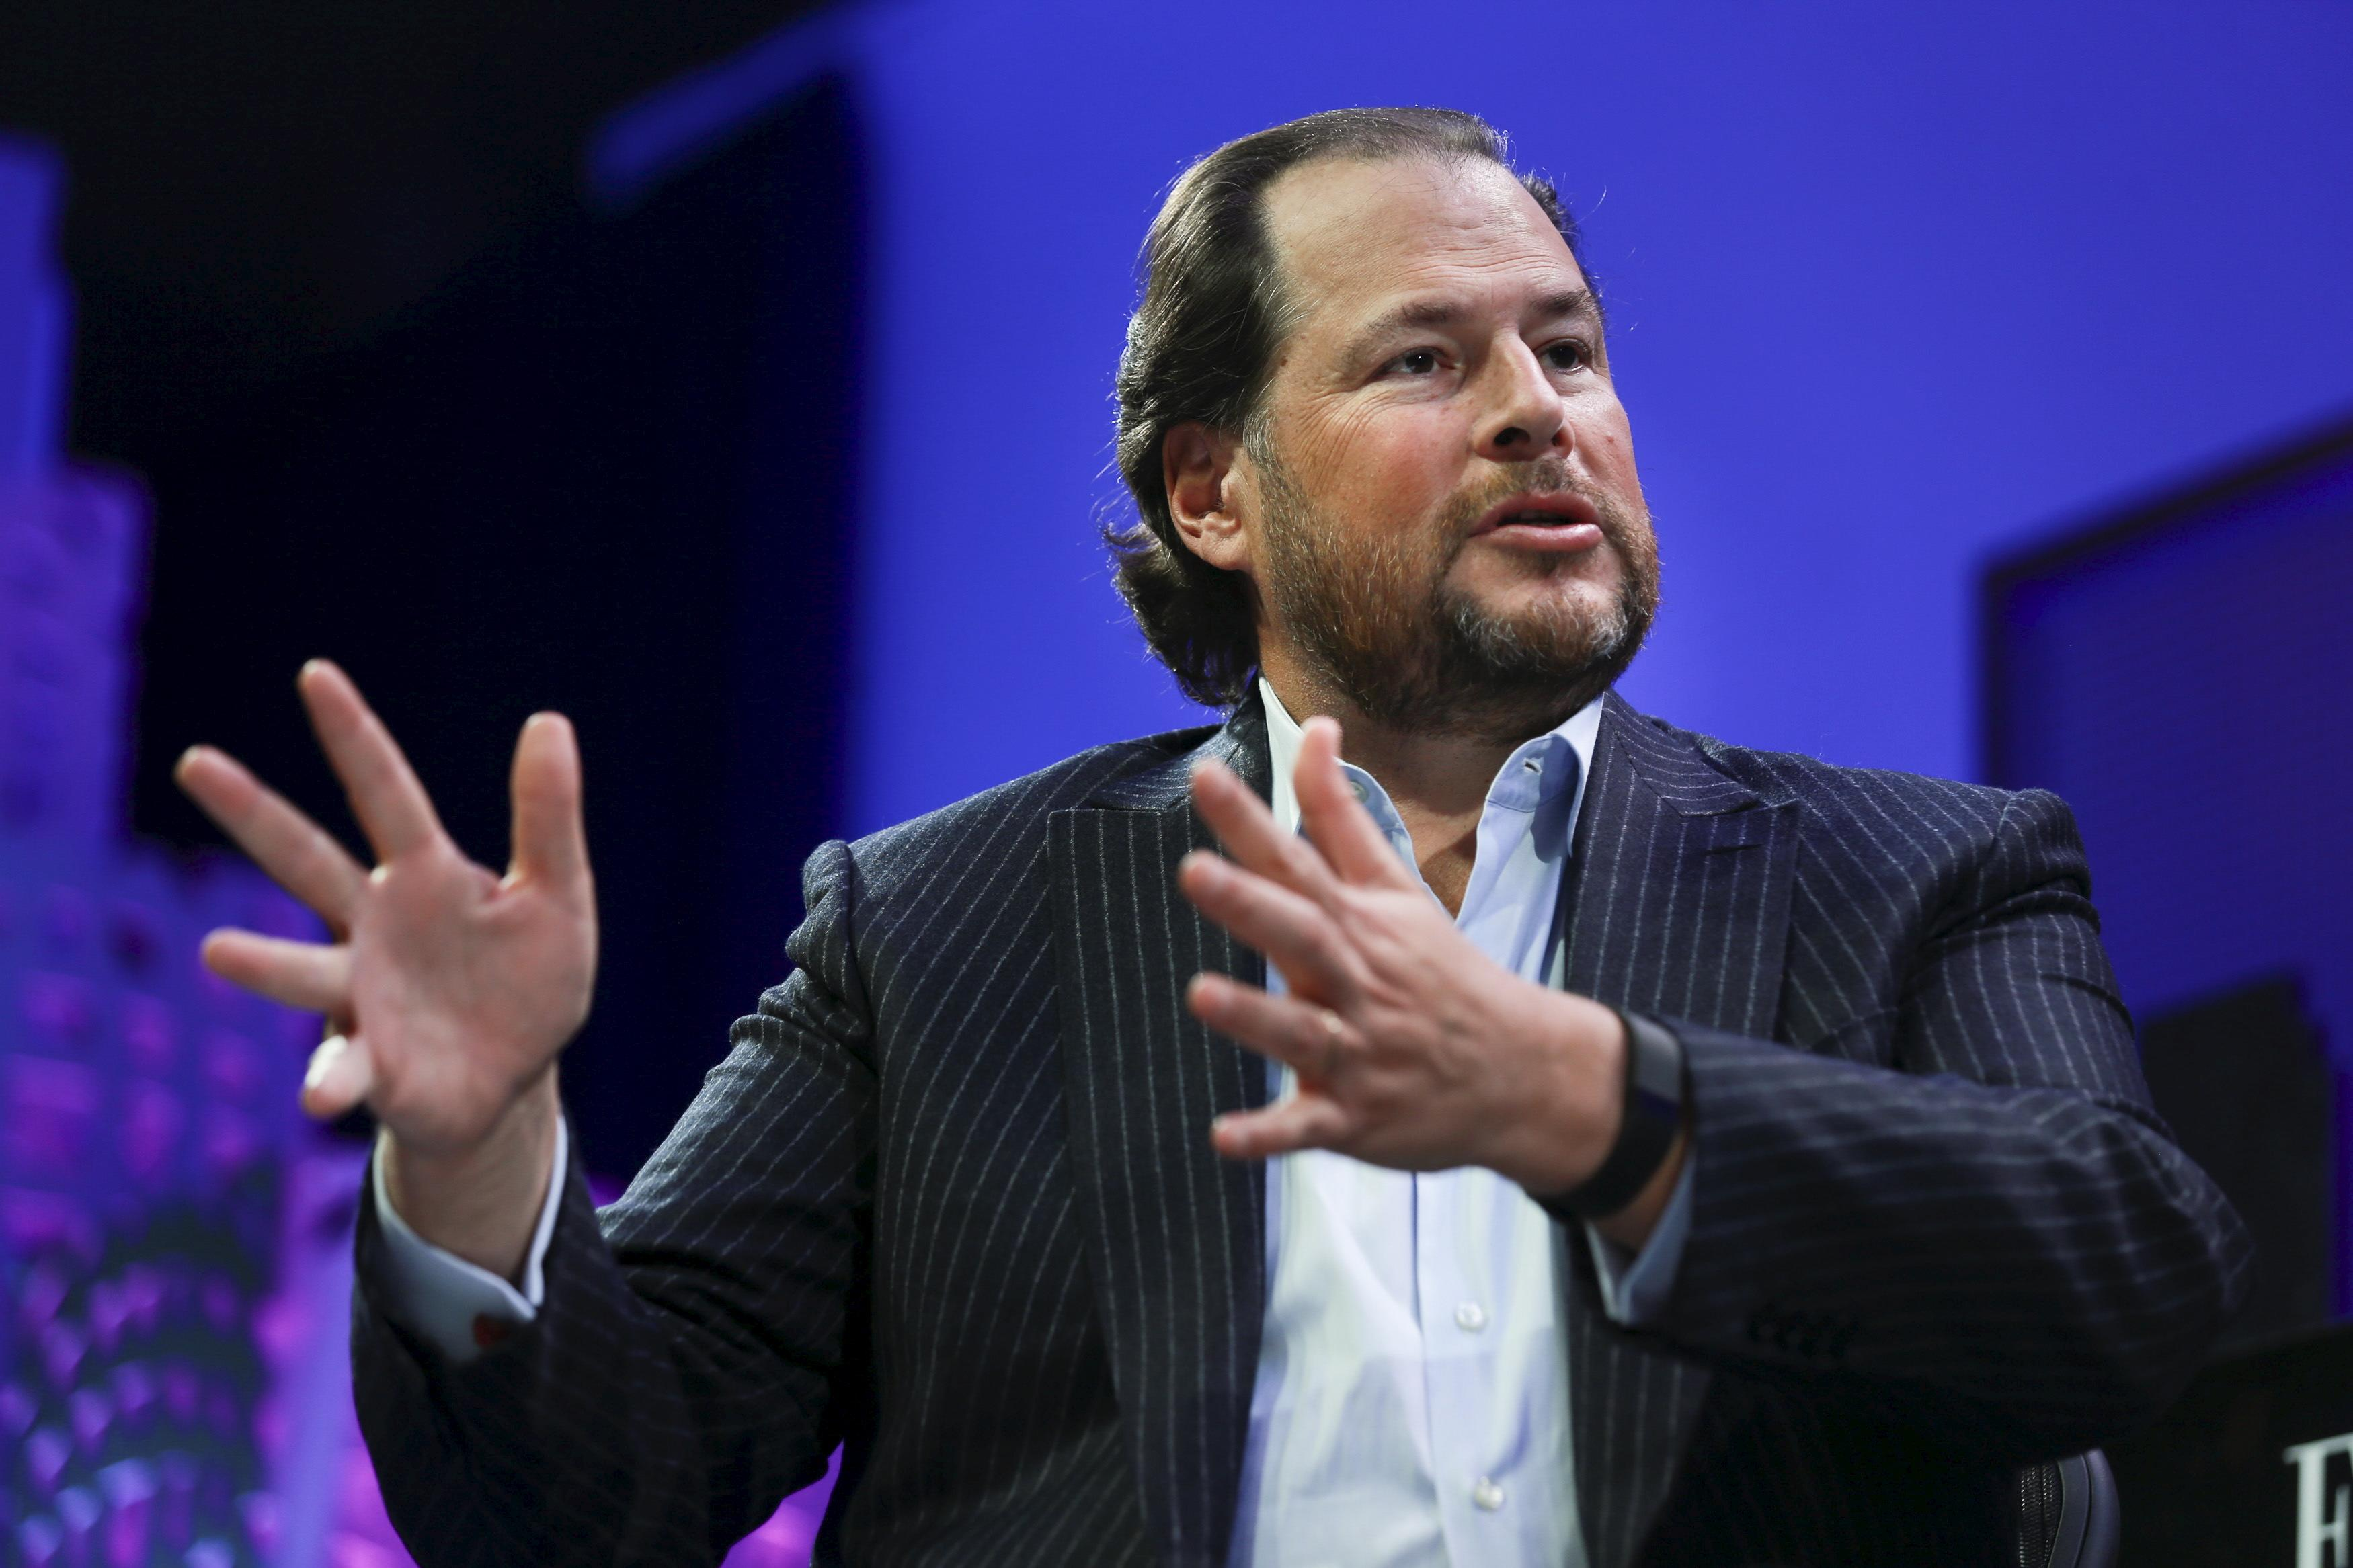 Salesforce's CEO rallies to the coronavirus fight, vows no layoffs for at least 90 days